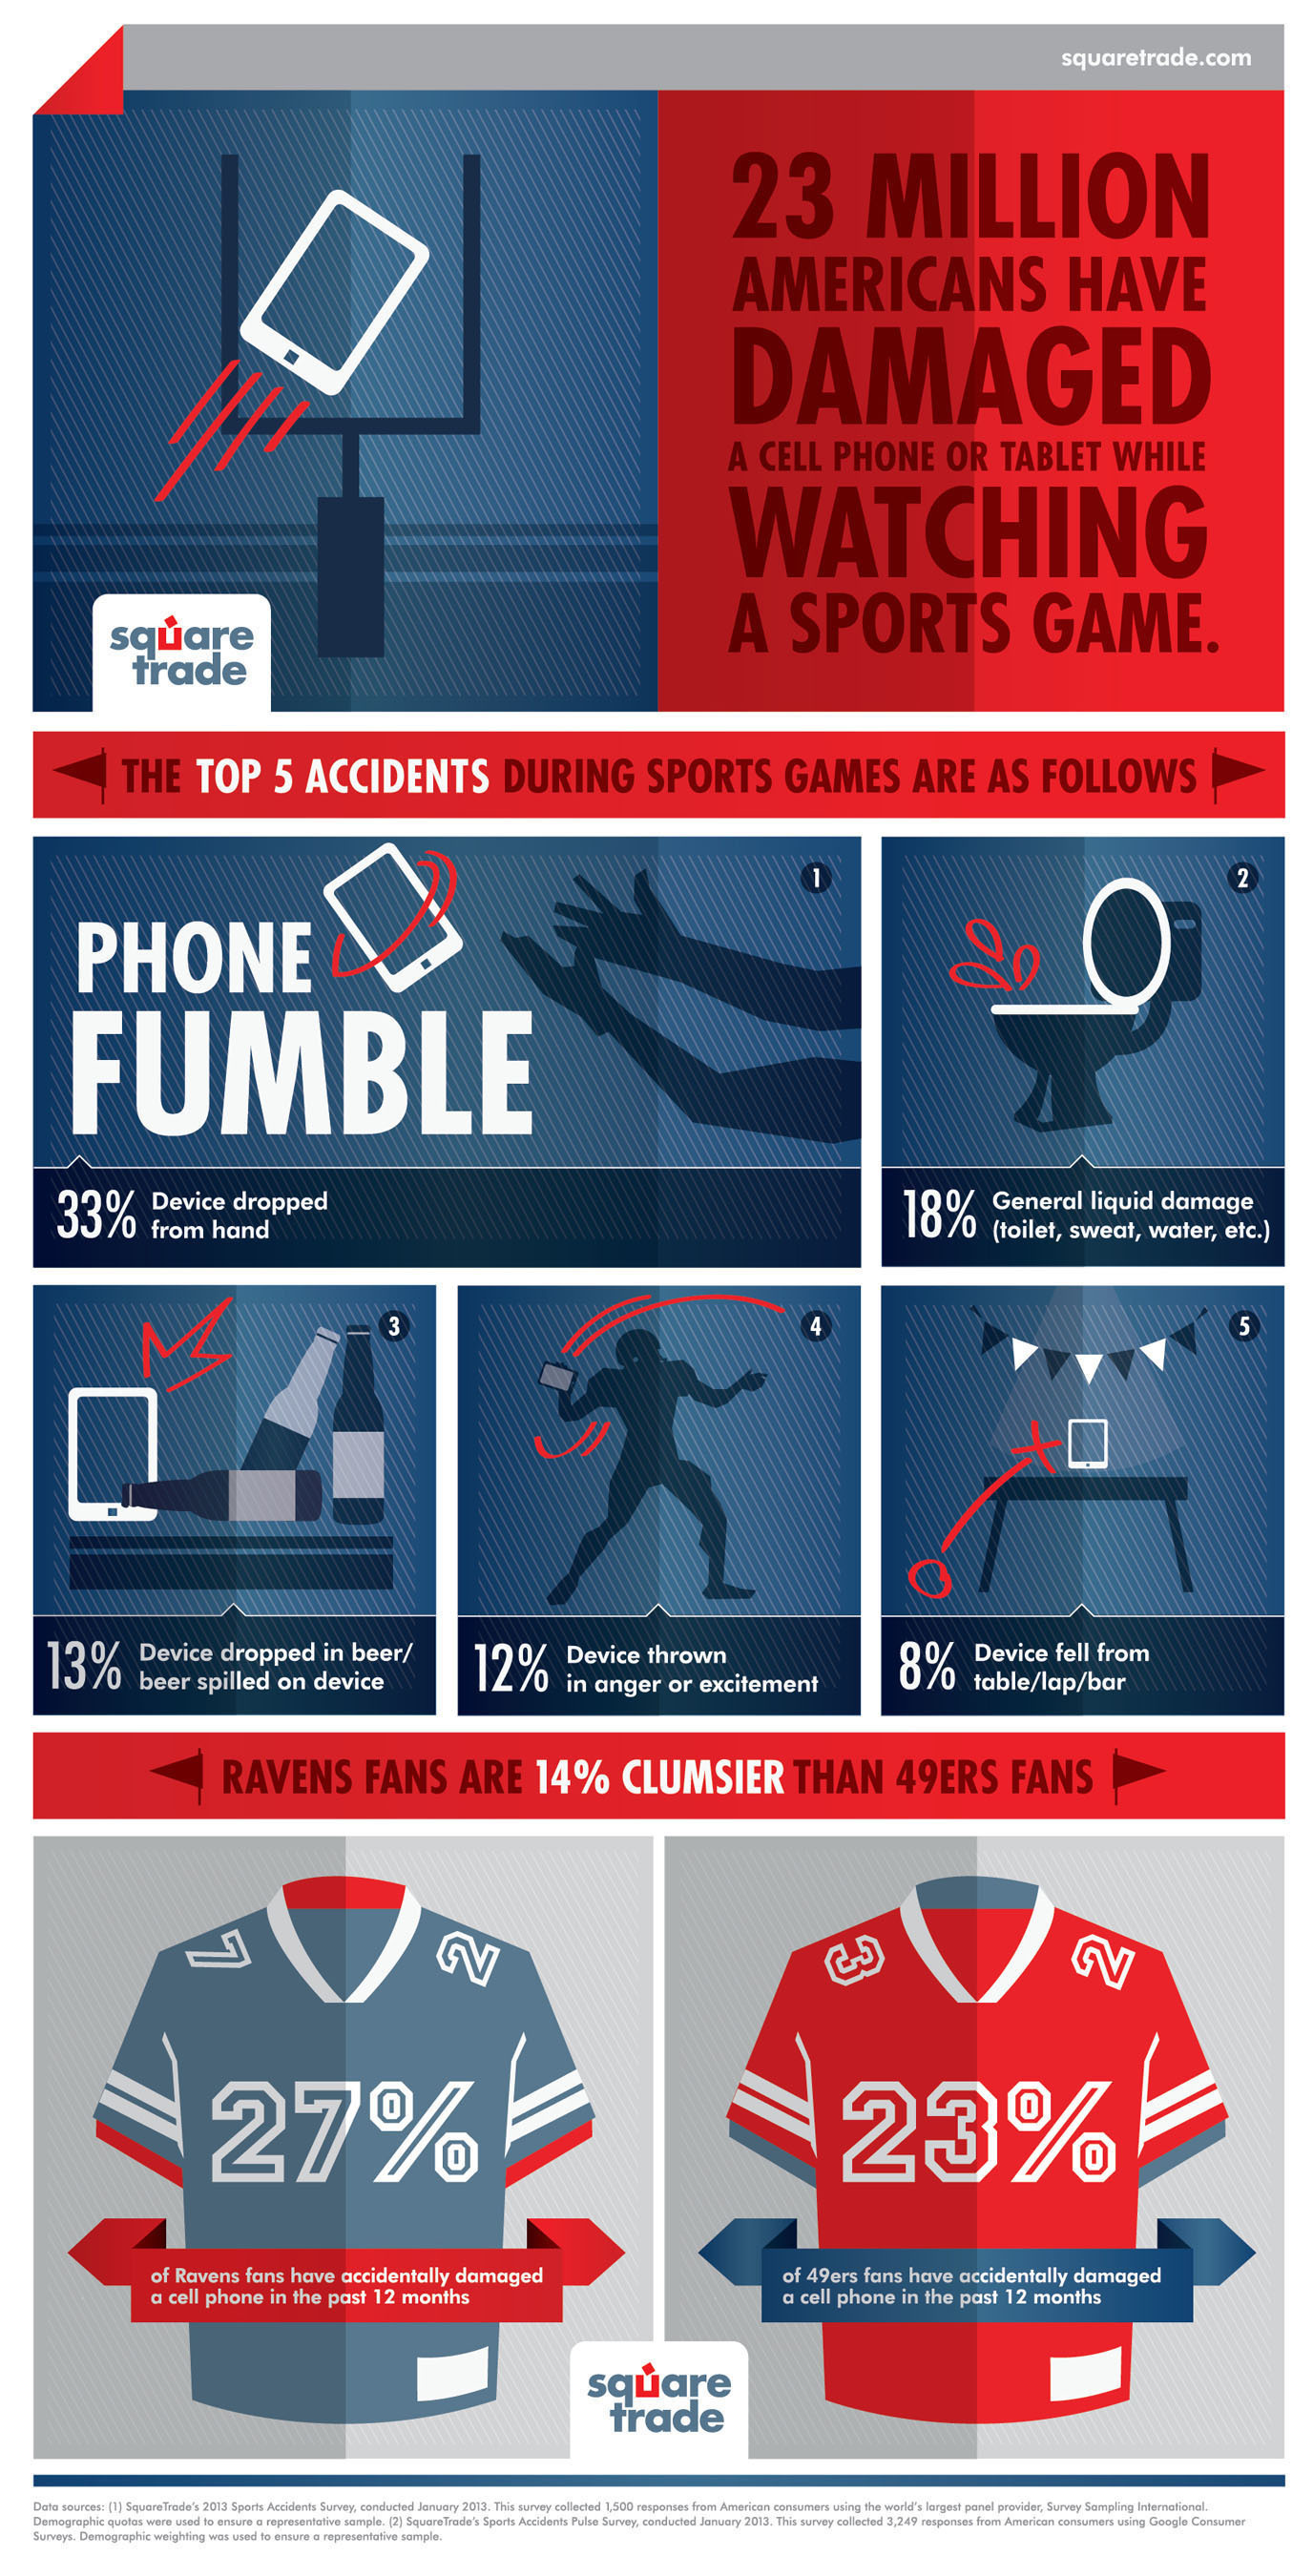 23 Million Americans Have Damaged Phones While Watching Sporting Events. Who fumbles more: Raven or 49er fans?   ...